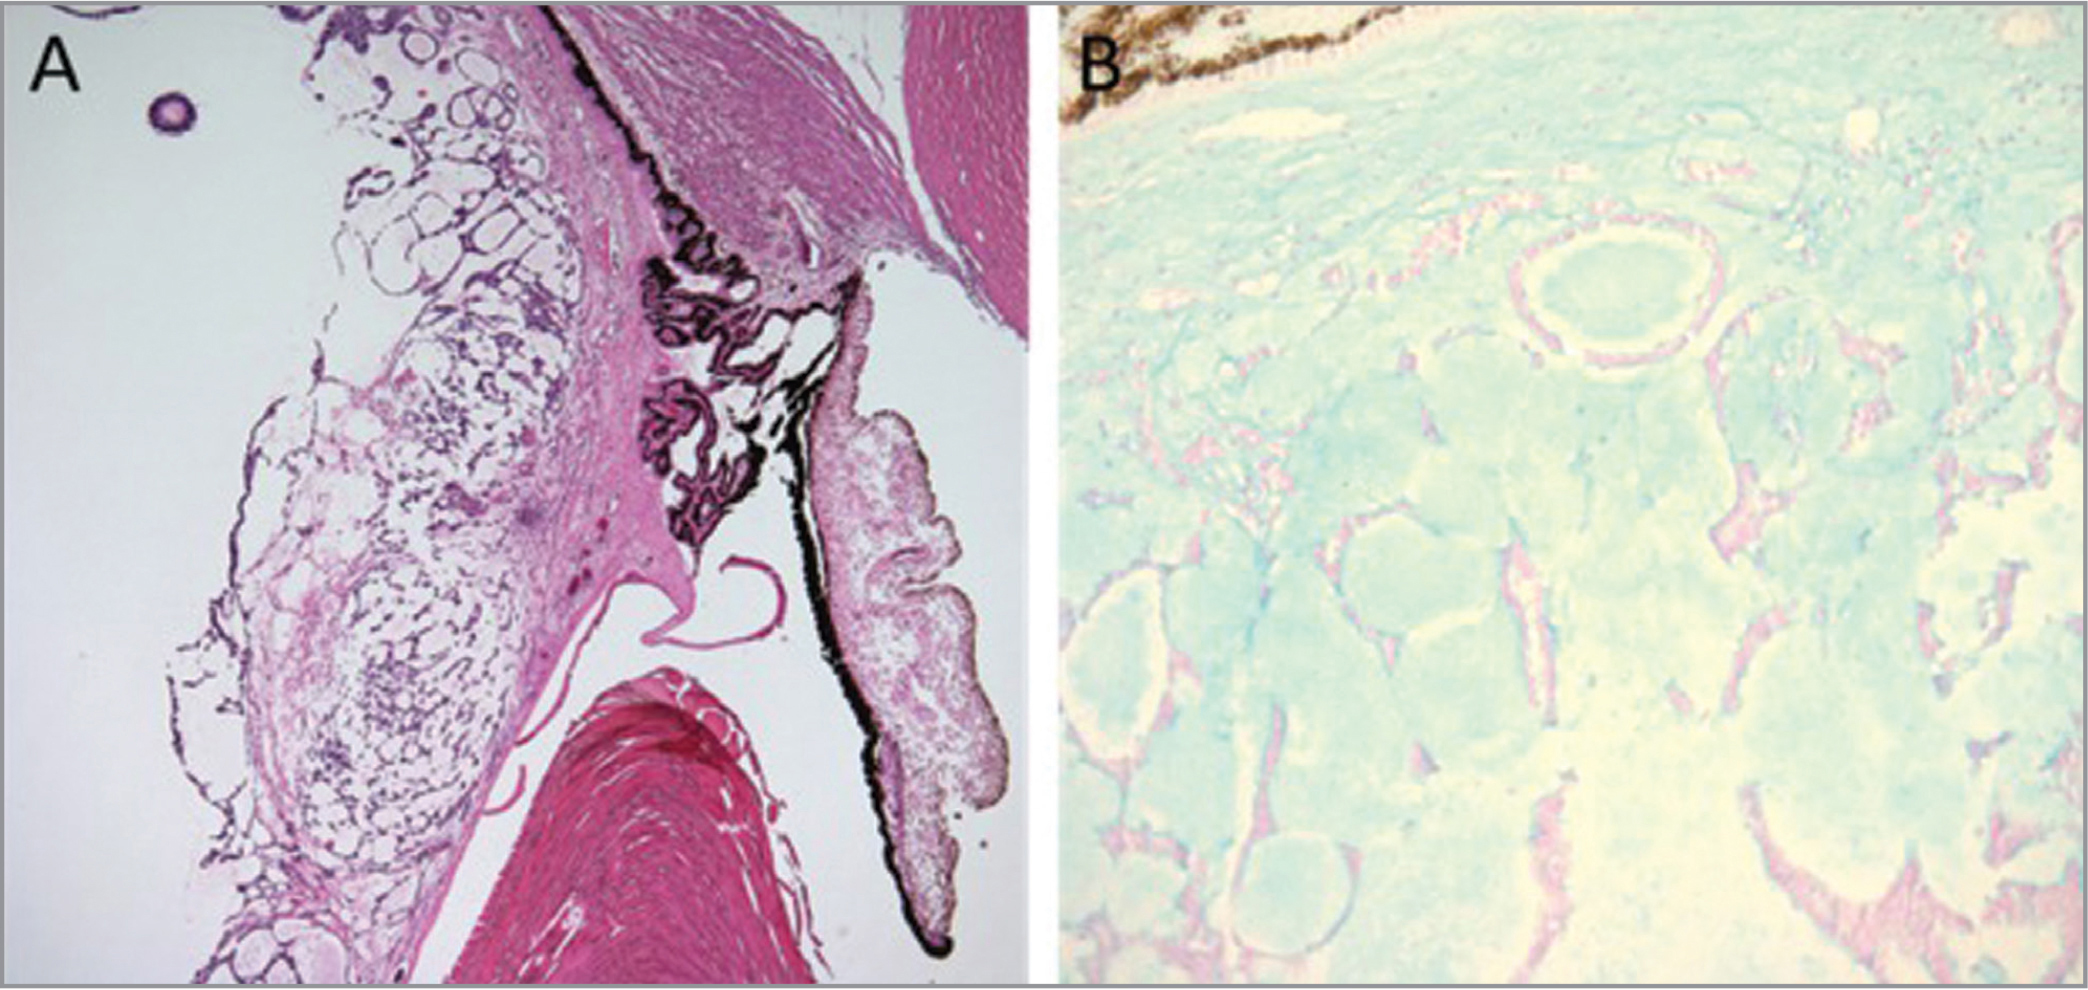 Histopathology revealed a tumor composed of basophilic cells in ribbons, cords, and cysts overlying the pars plana with extension along the posterior aspect of the crystalline lens to the contralateral ciliary body and pars plicata. Cystic structures stained positively for mucopolysaccharides on Alcian blue staining.